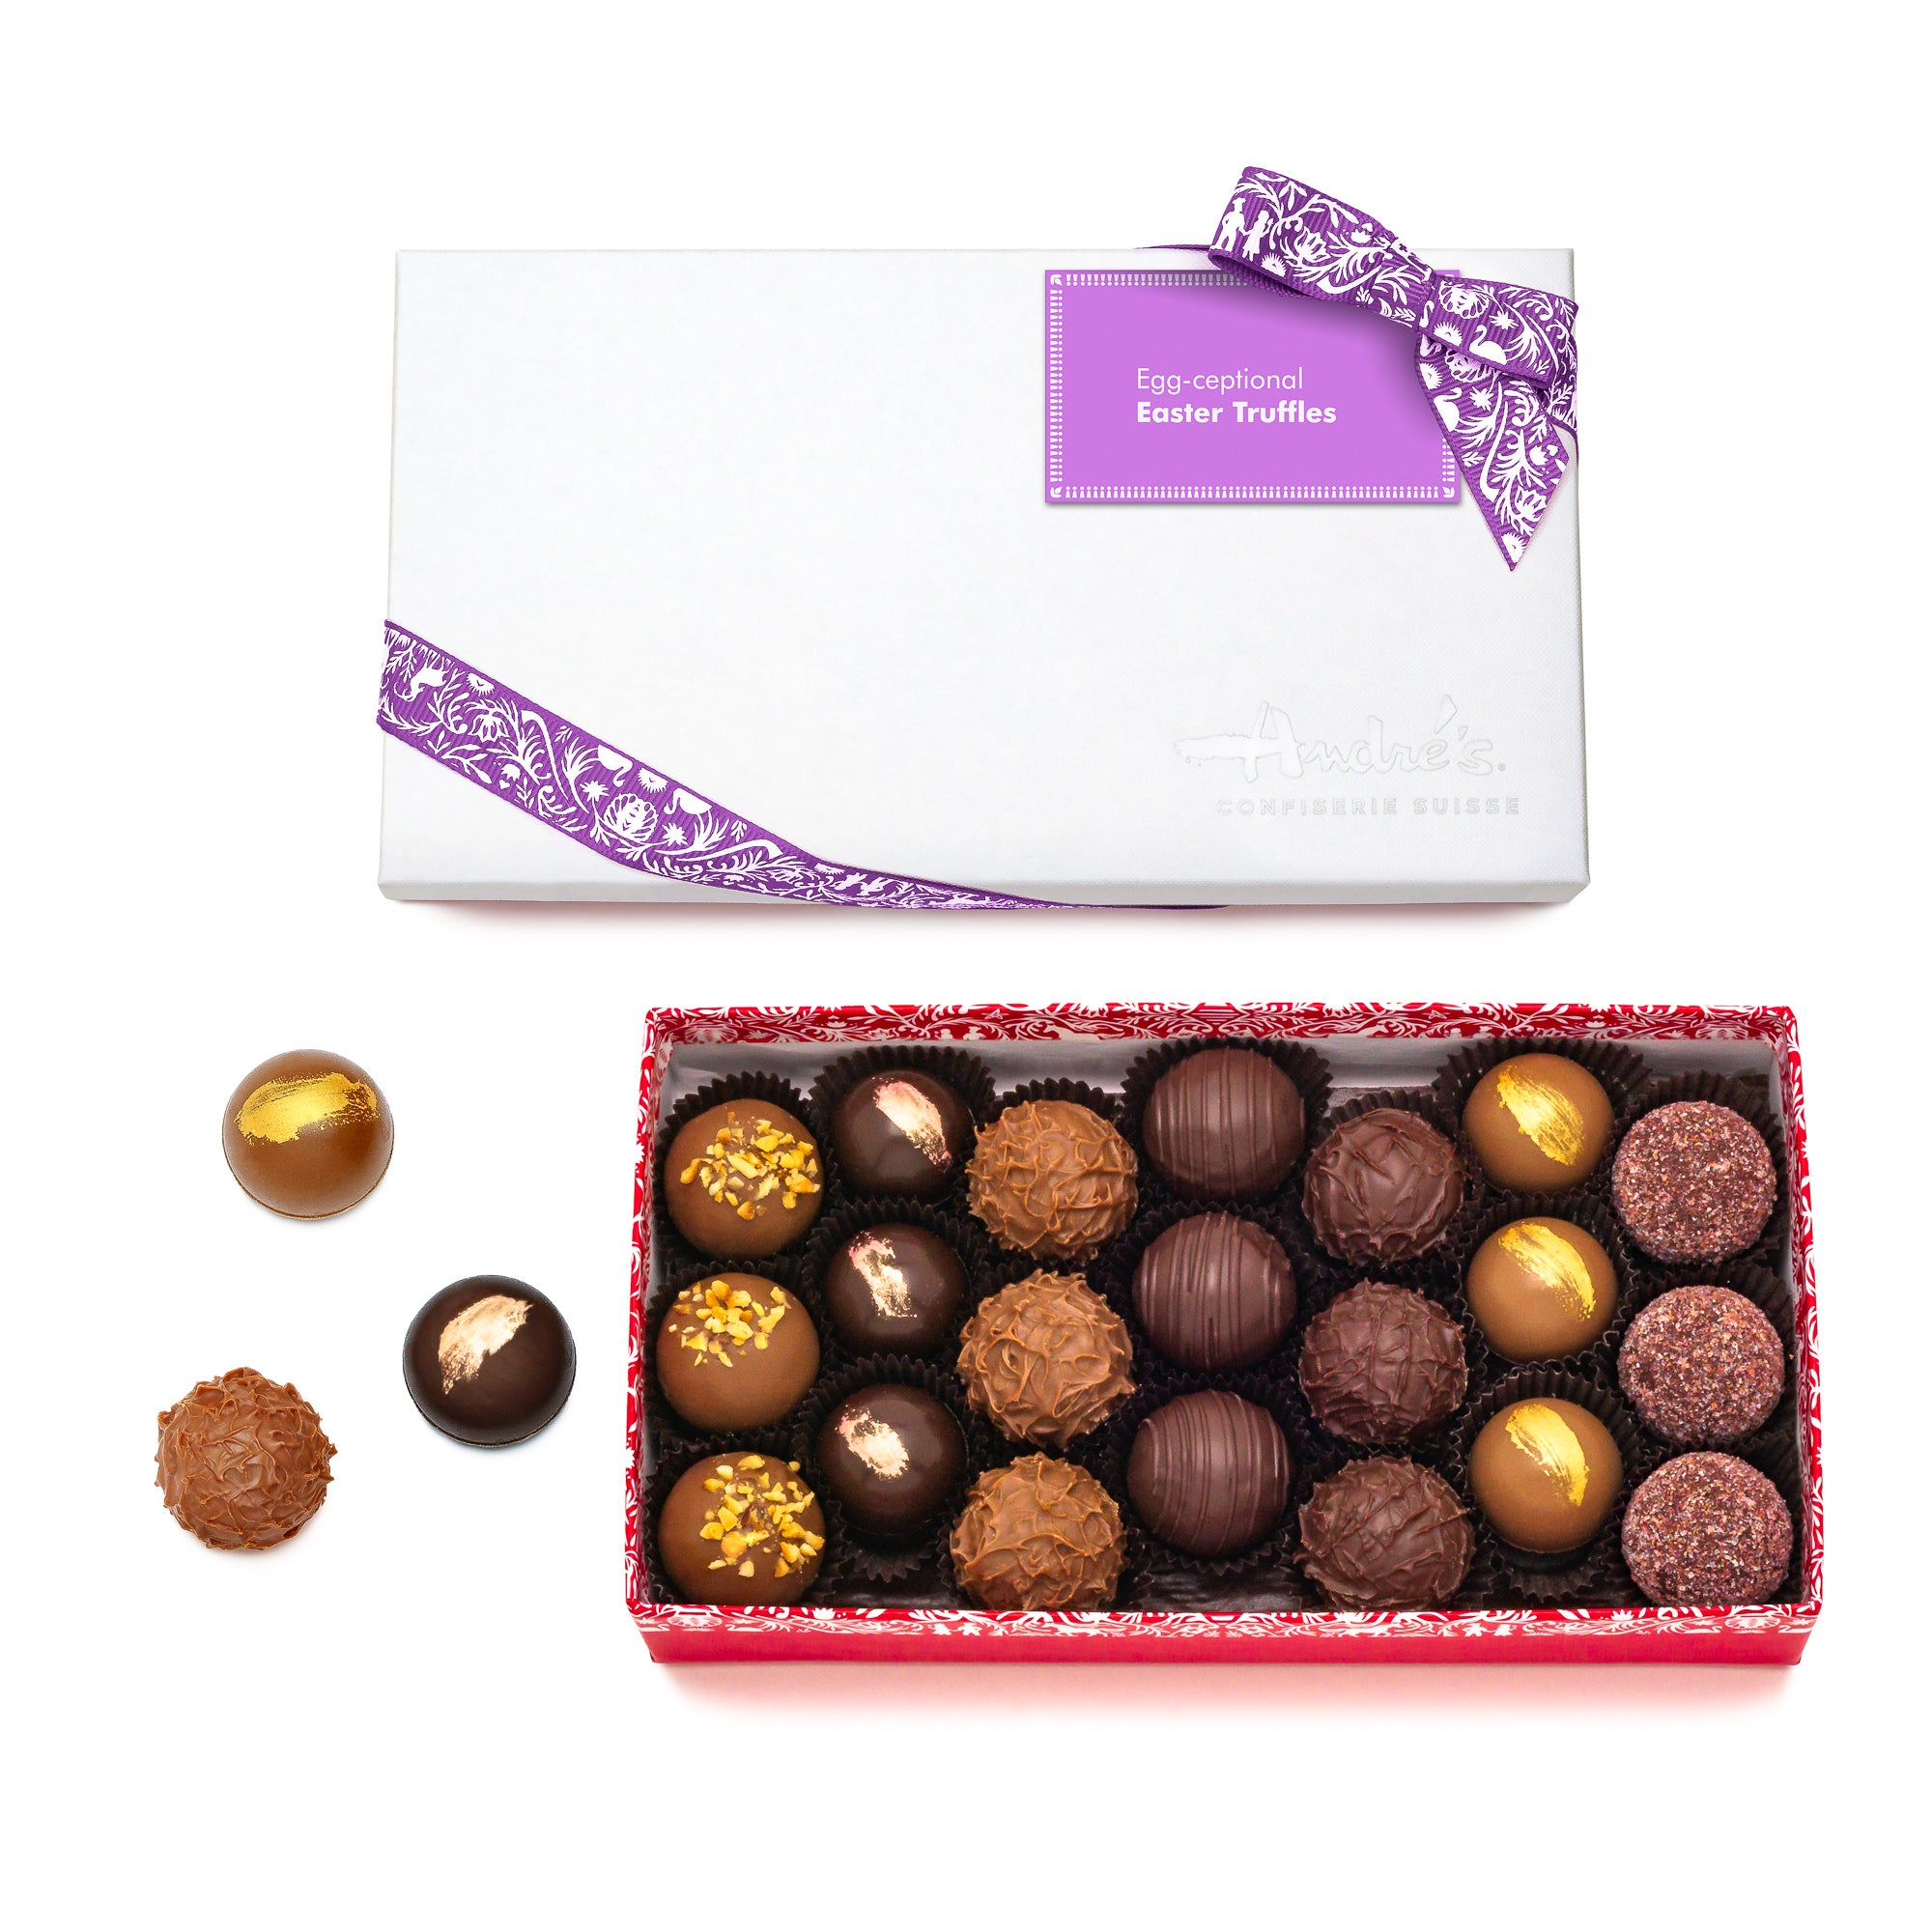 Egg-ceptional Truffles